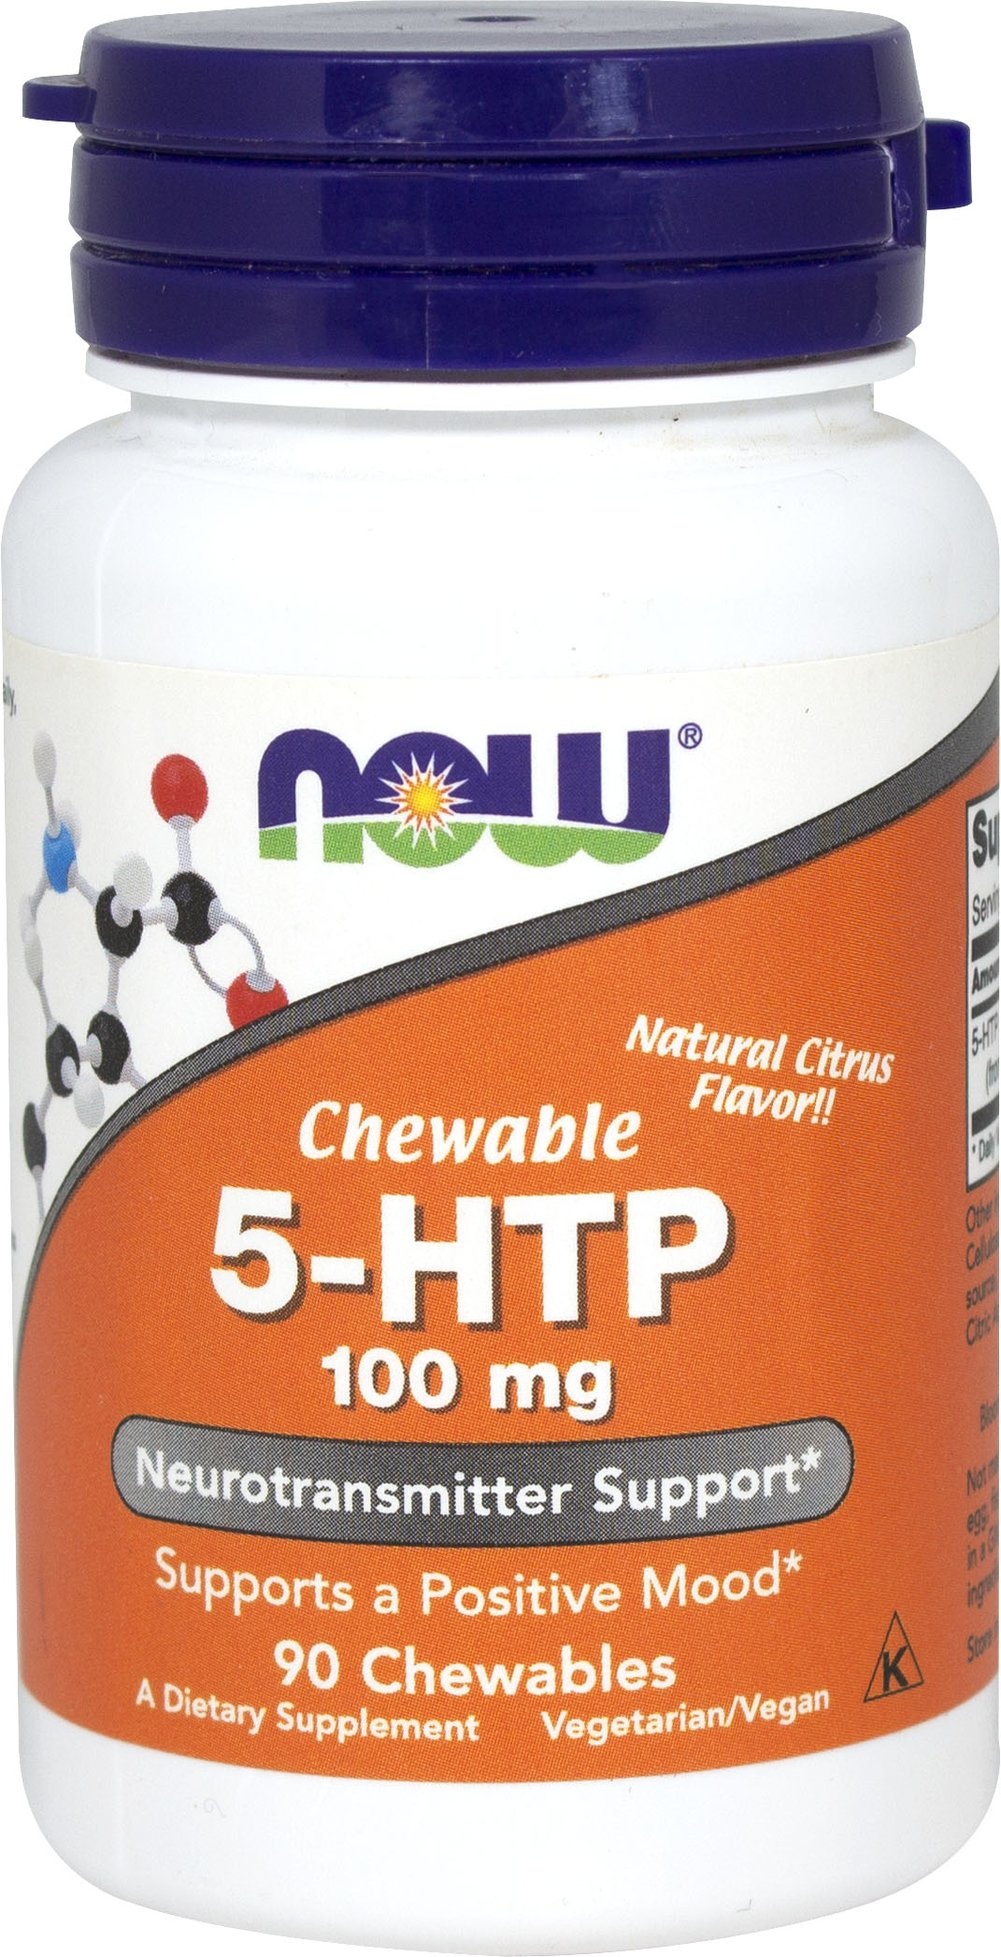 5-HTP 100 MG Chewable <p><strong>From the Manufacturer's label</strong></p><p><strong>NOW® Foods Chewable 5-HTP,  the intermediate metabolite between the amino acid L-tryptophan and serotonin, is extracted from the bean of an African plant (Griffonia simplicifolia). NOW® Foods Chewable 5-HTP has a natural citrus flavor in a vegetarian formula.</strong></p><strong></strong> 90 Chewables 100 mg $16.99